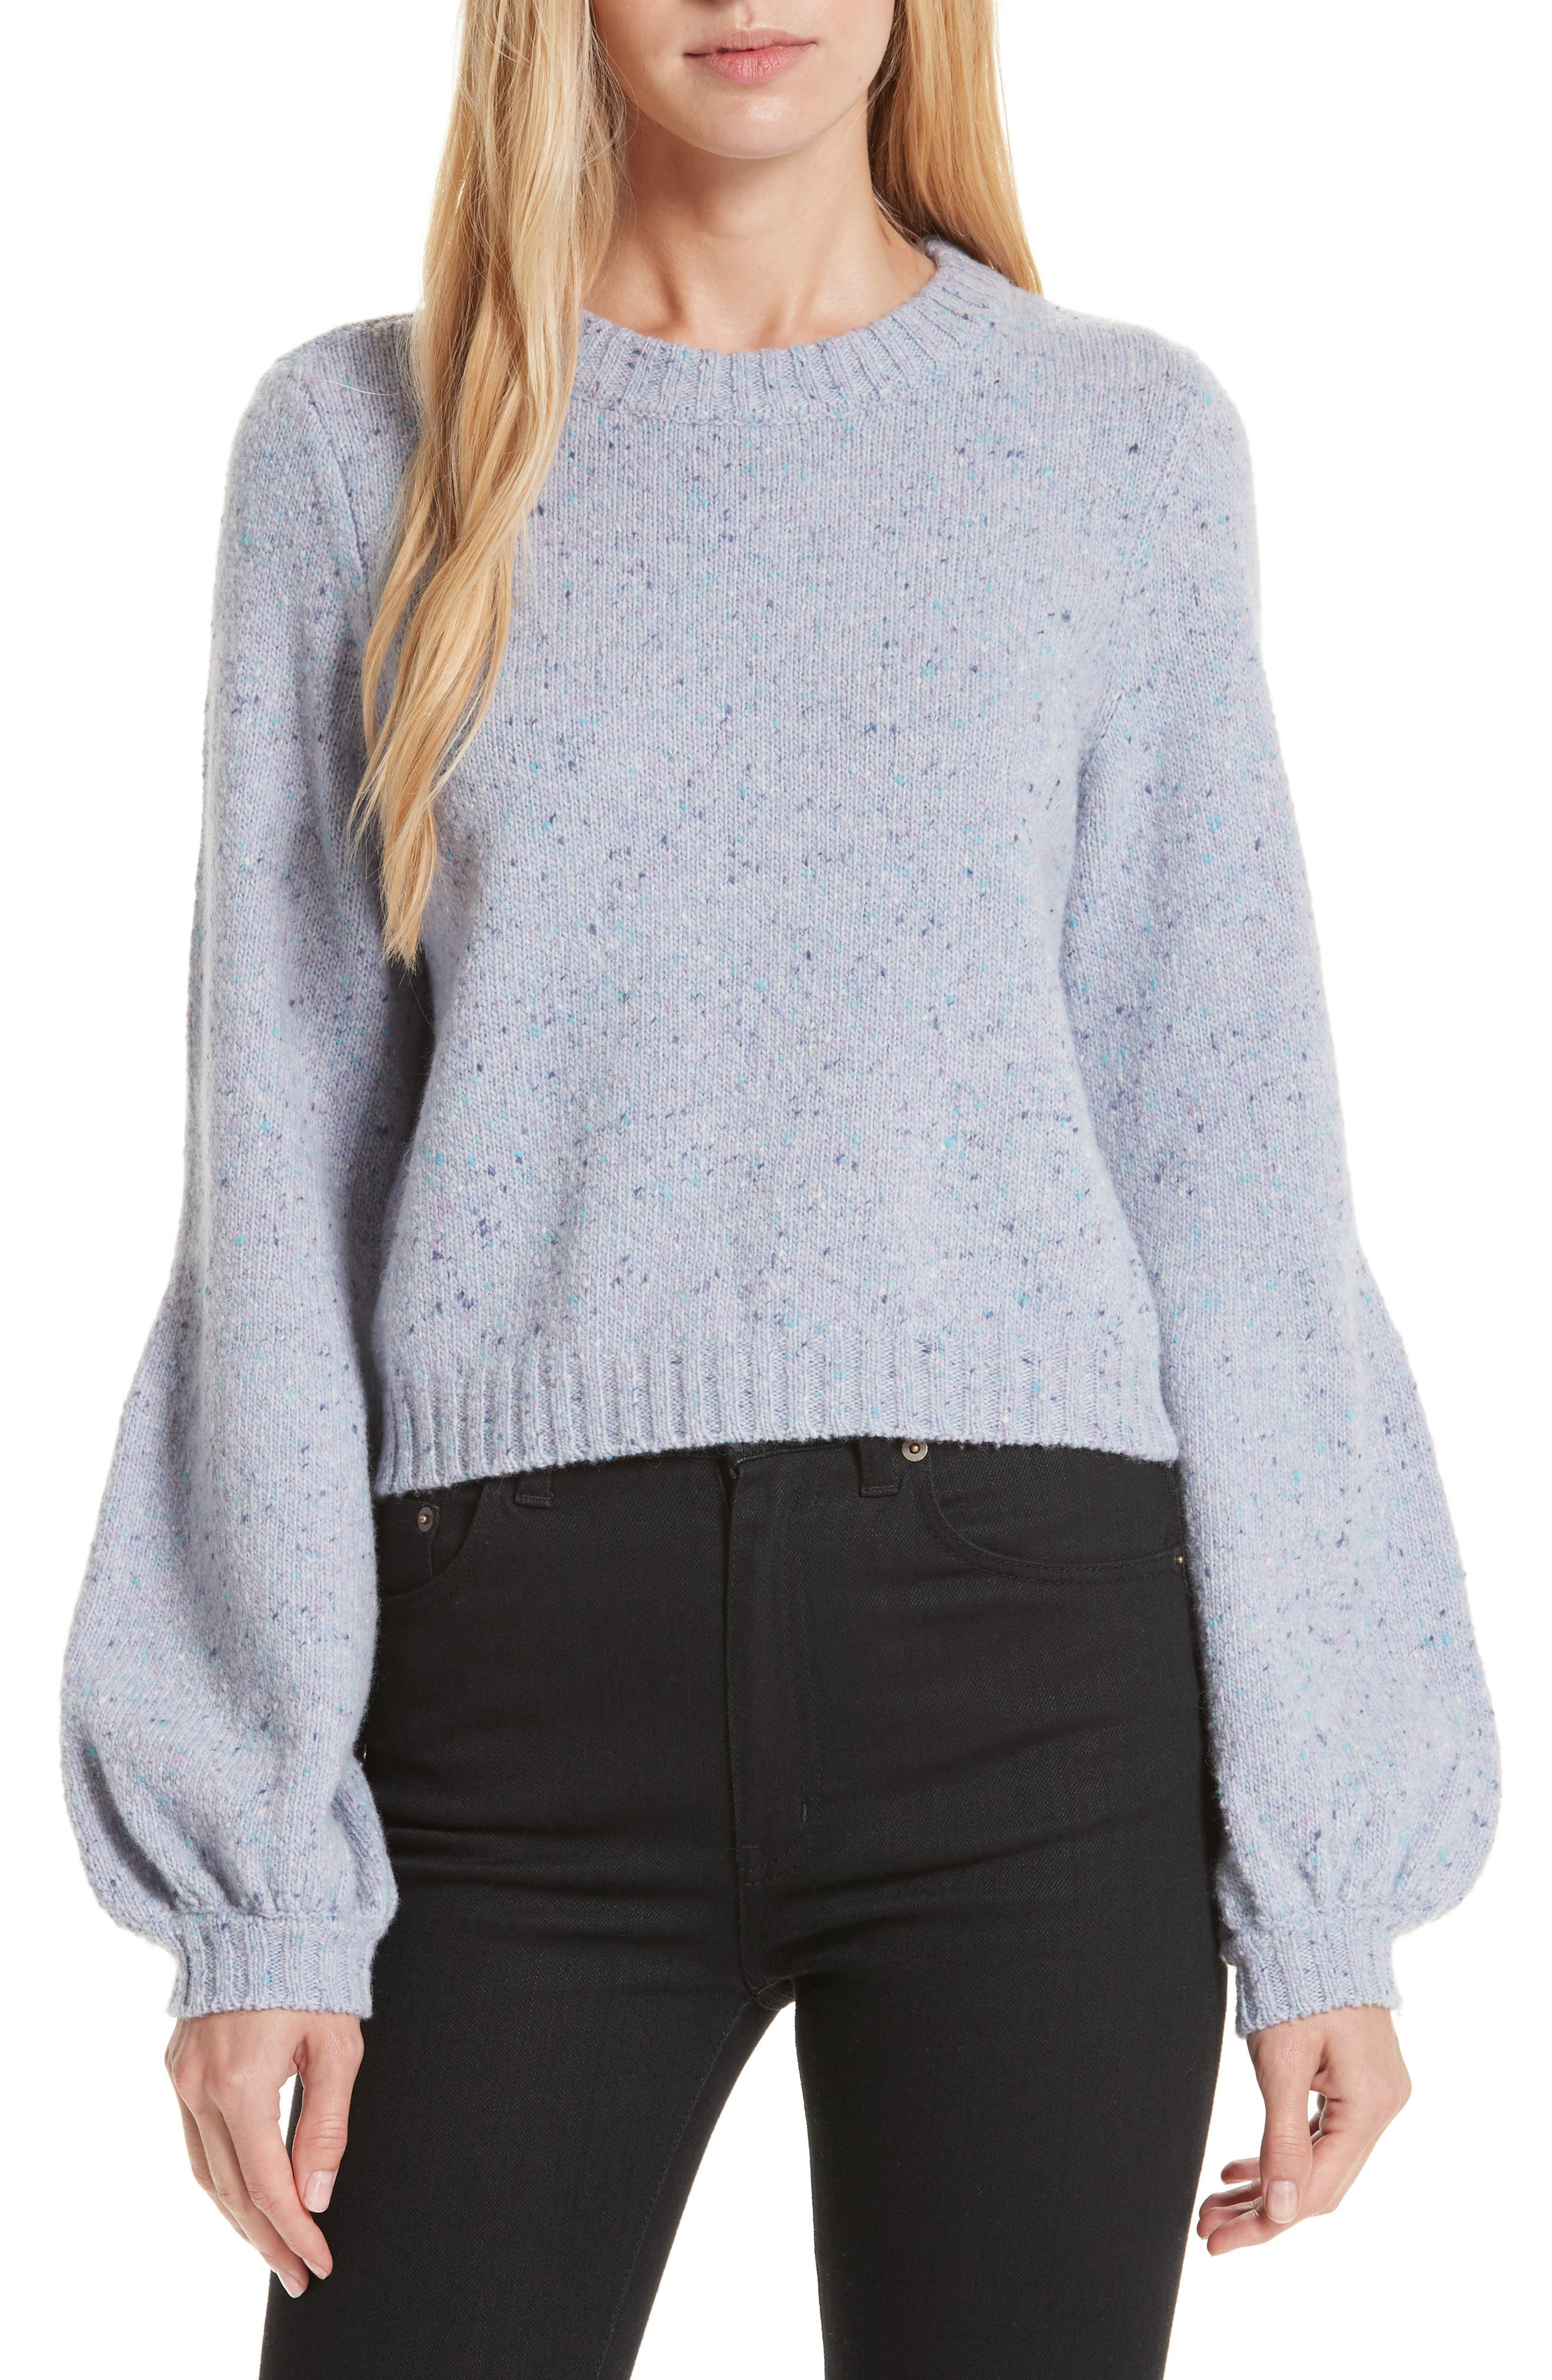 Milly Bell Sleeve Wool Blend Sweater, Size Petite - Blue